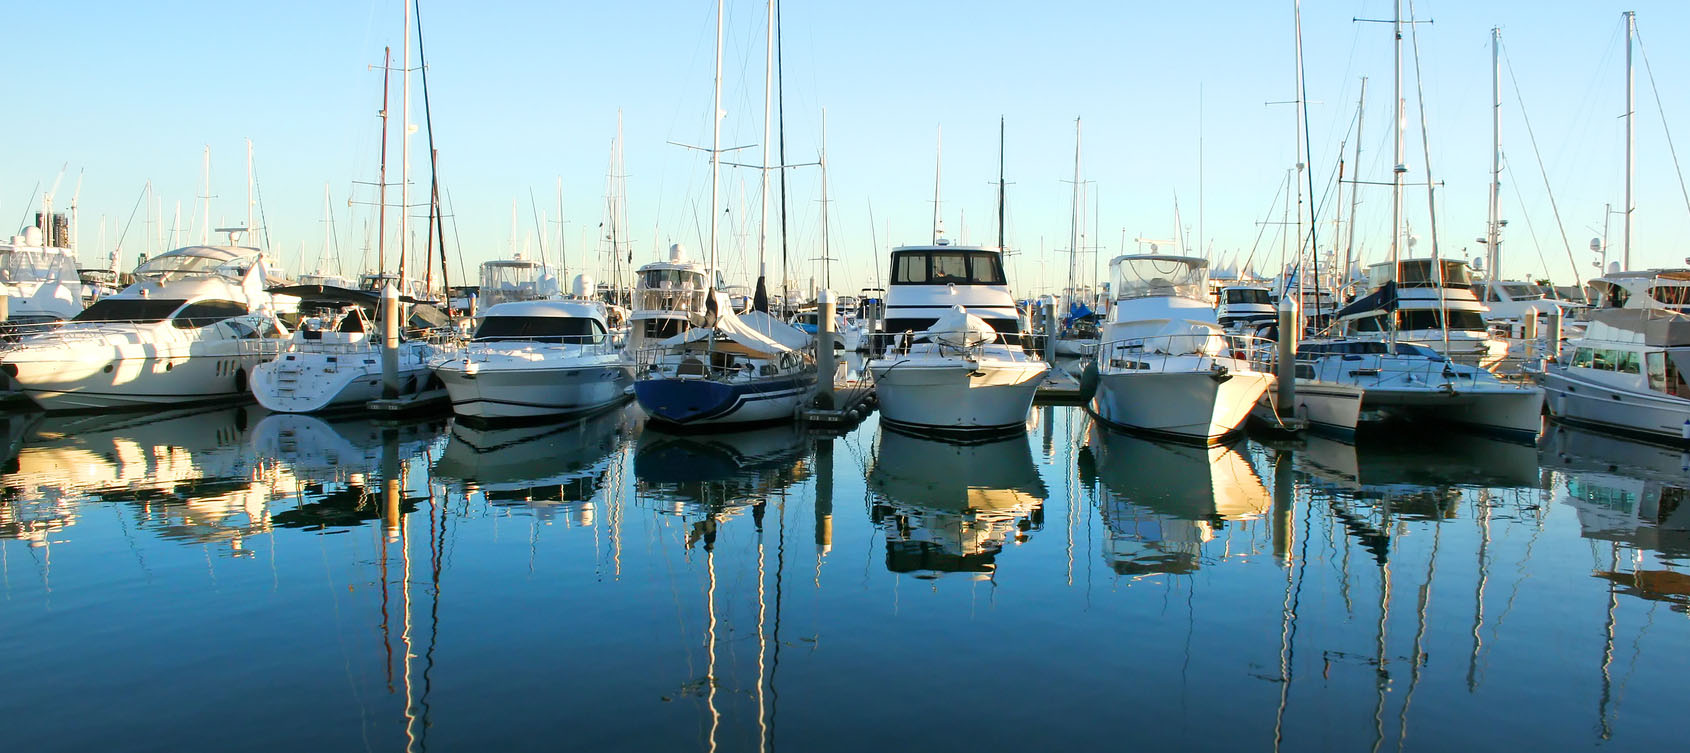 boats-in-marina